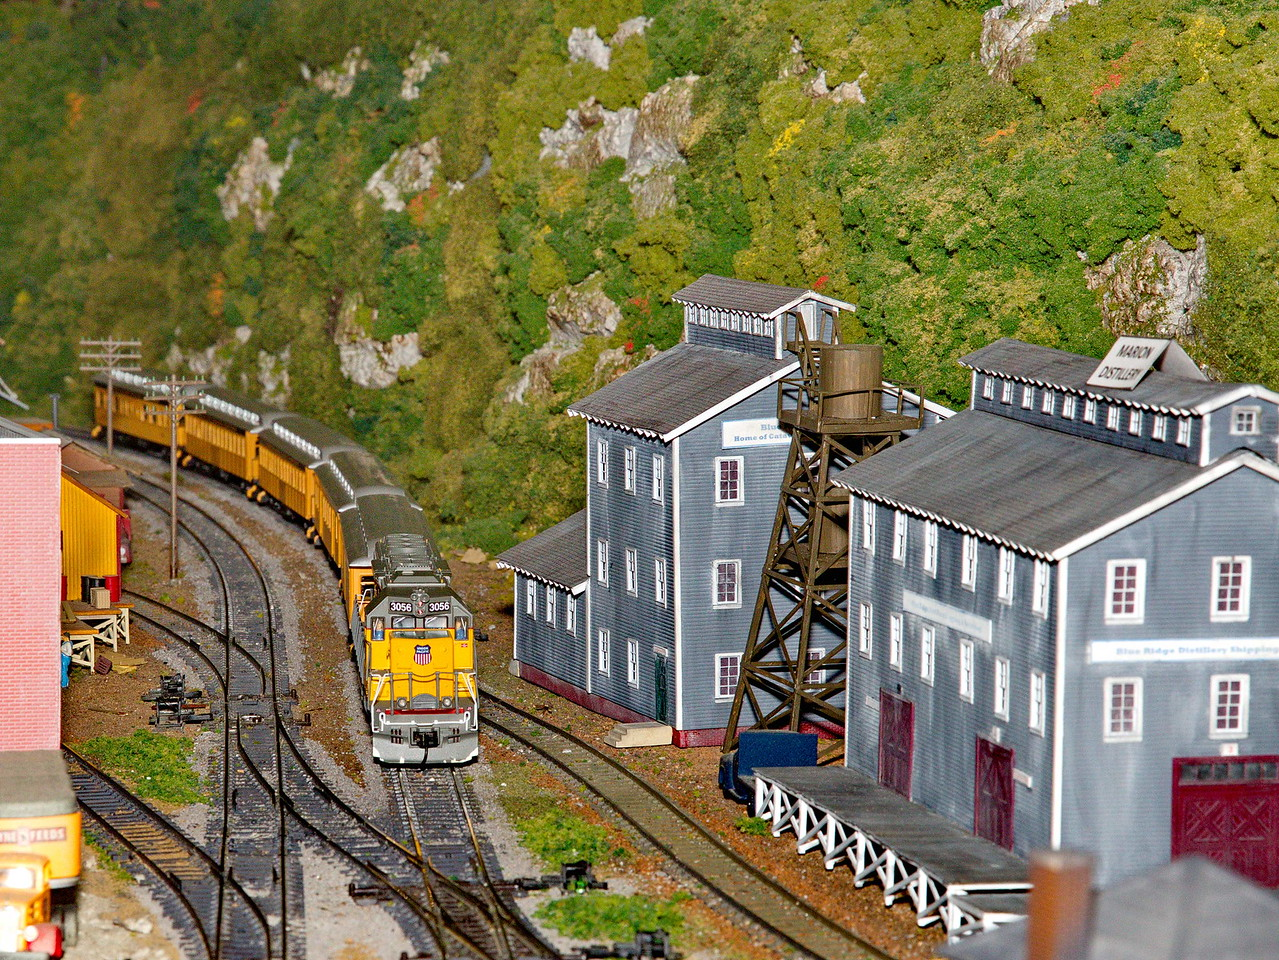 The Union Pacific passenger train passes a distillery.